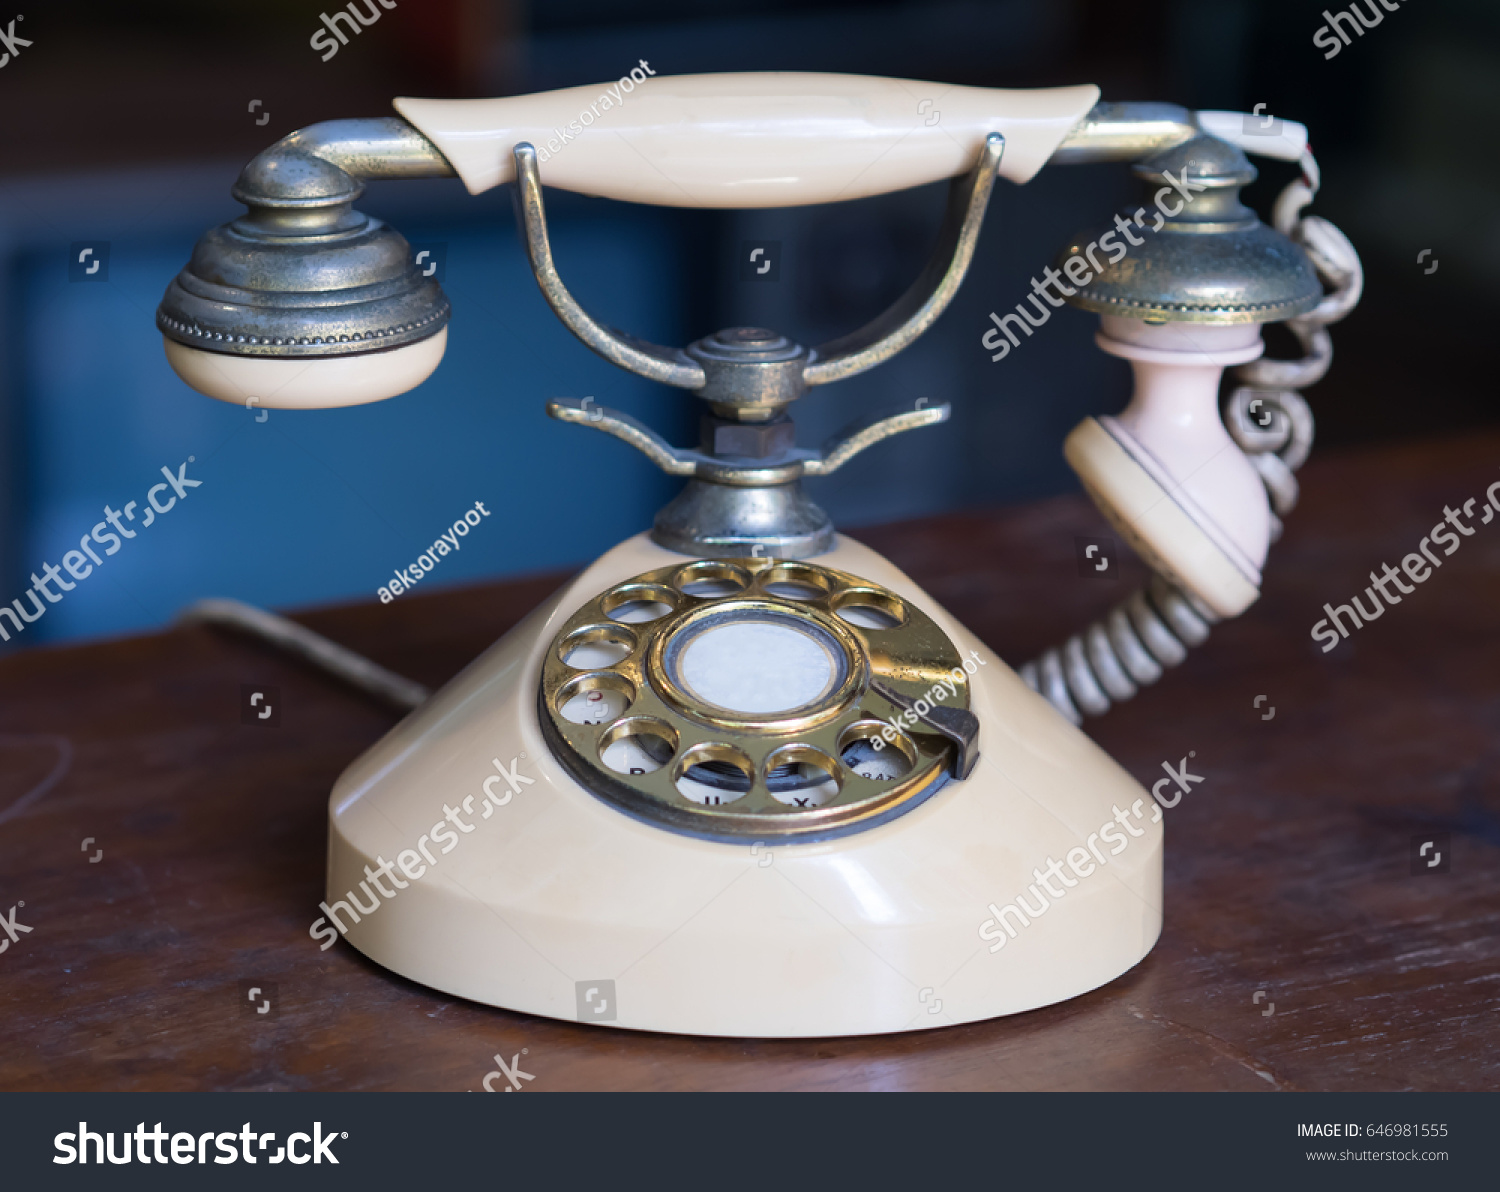 hight resolution of old antique phone on wooden table